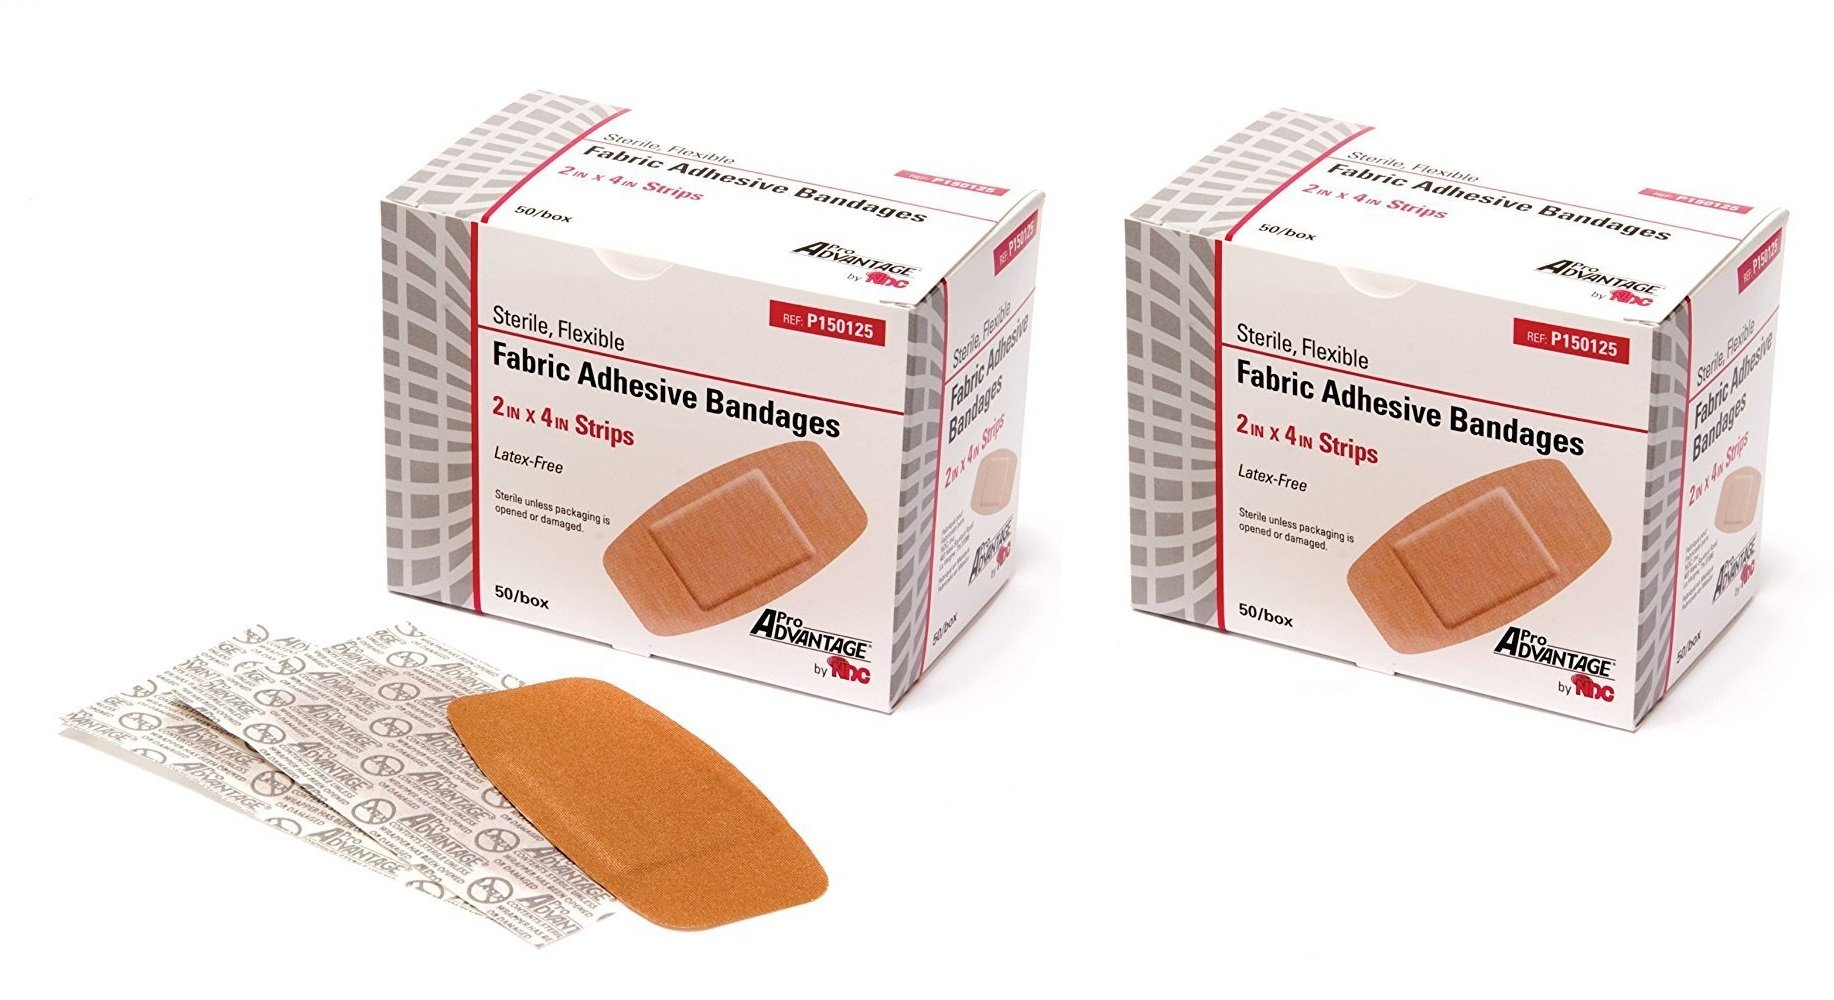 ProAdvantage P150125 Flexible Large Adhesive Bandages 2'' x 4'' (Pack of 100)